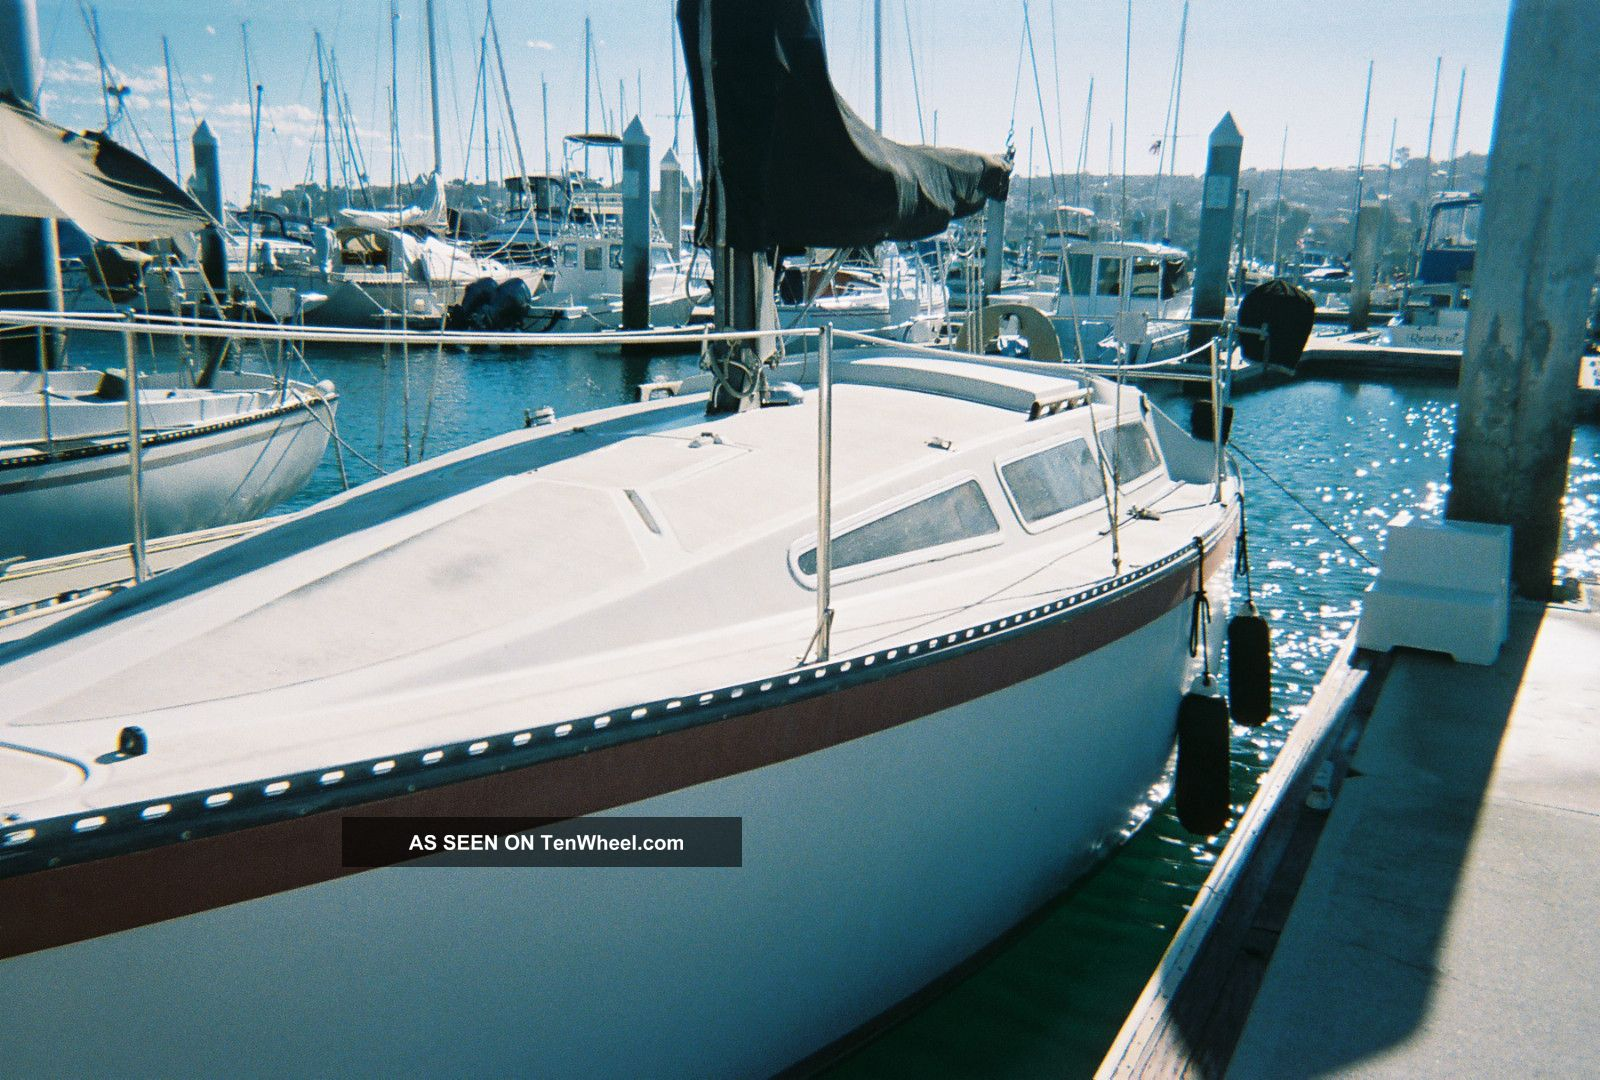 1976 Lancer 28 Sailboats 28+ feet photo